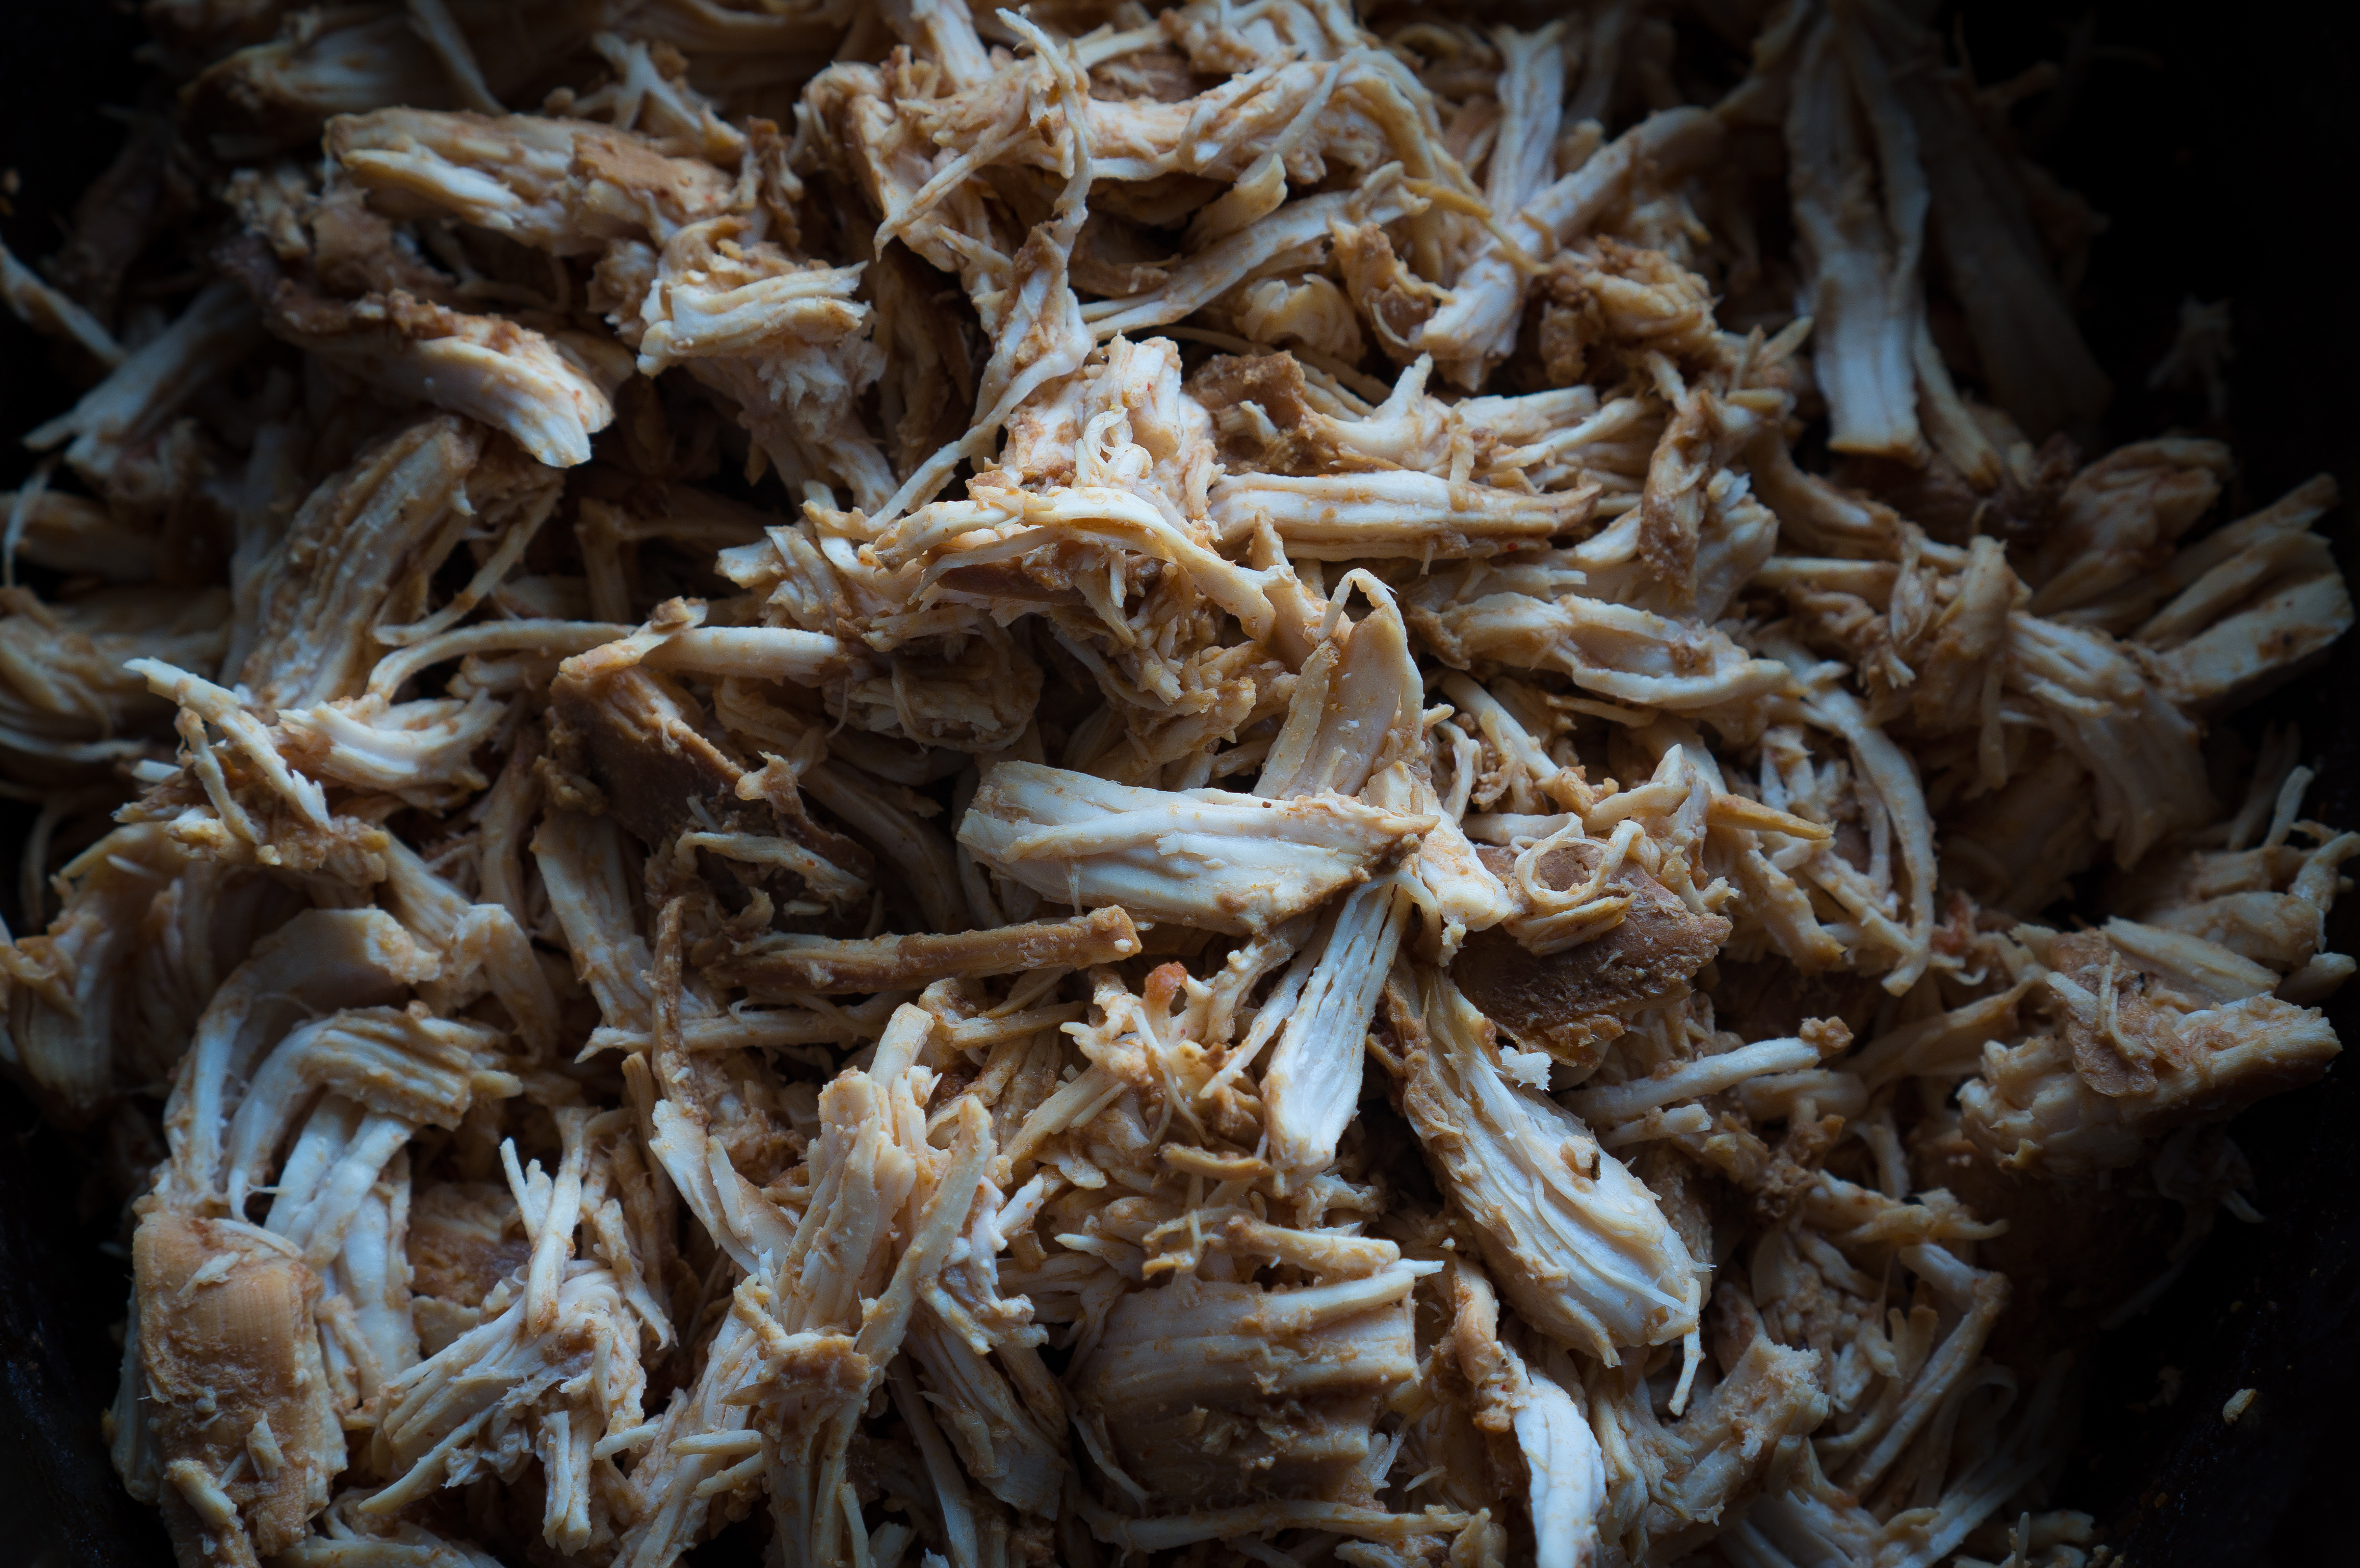 Easy Crockpot Pulled Chicken - This gluten-free recipe for Easy Crockpot Pulled Chicken is easy eats! Lean, protein-packed chicken breasts are made in the slow cooker with apple cider vinegar, tomato sauce, Worcestershire sauce, molasses, and smoked paprika. We love using this tender shredded chicken in enchiladas, tacos, lettuce wraps, sandwiches, and salads ♥ | freeyourfork.com